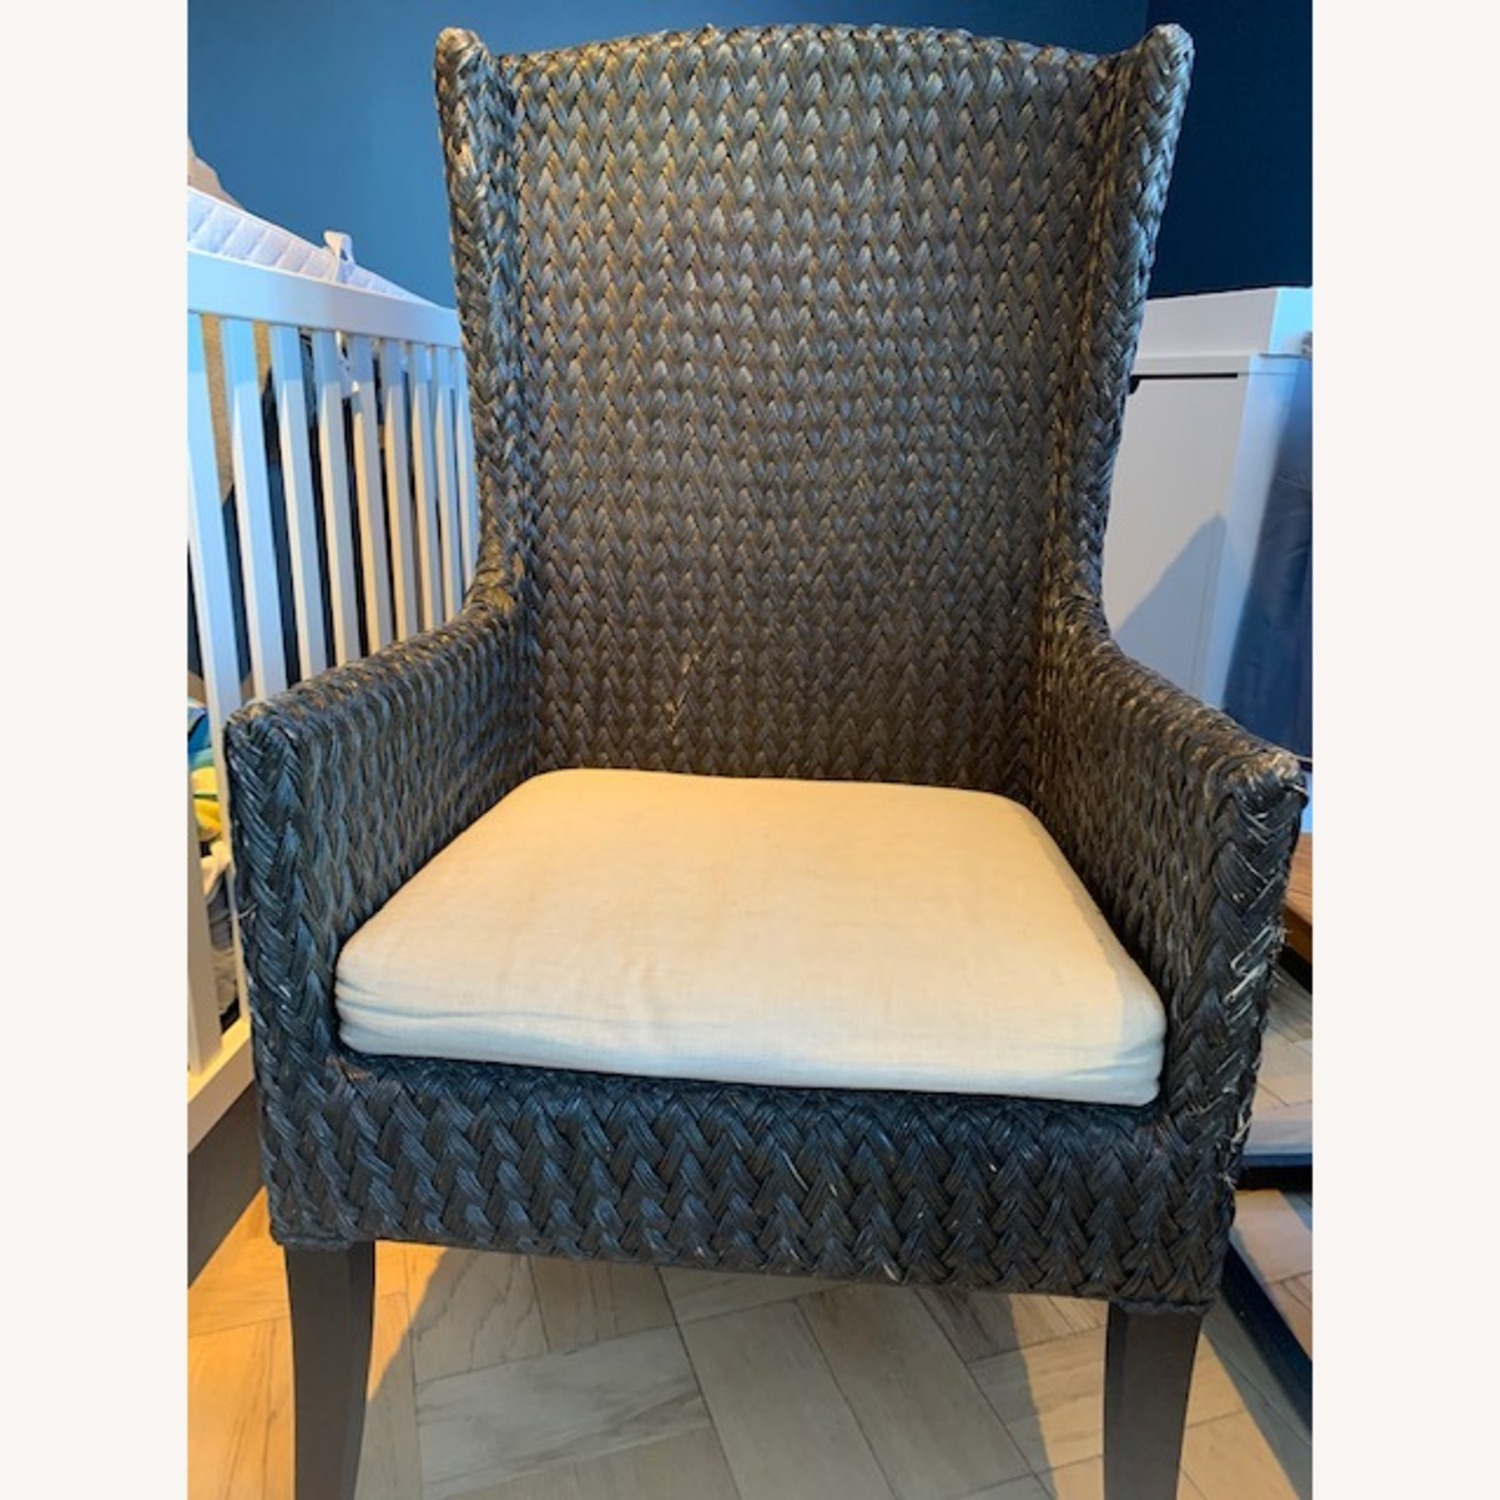 Crate & Barrel Palmetto II Arm Chair with Cushion - image-3